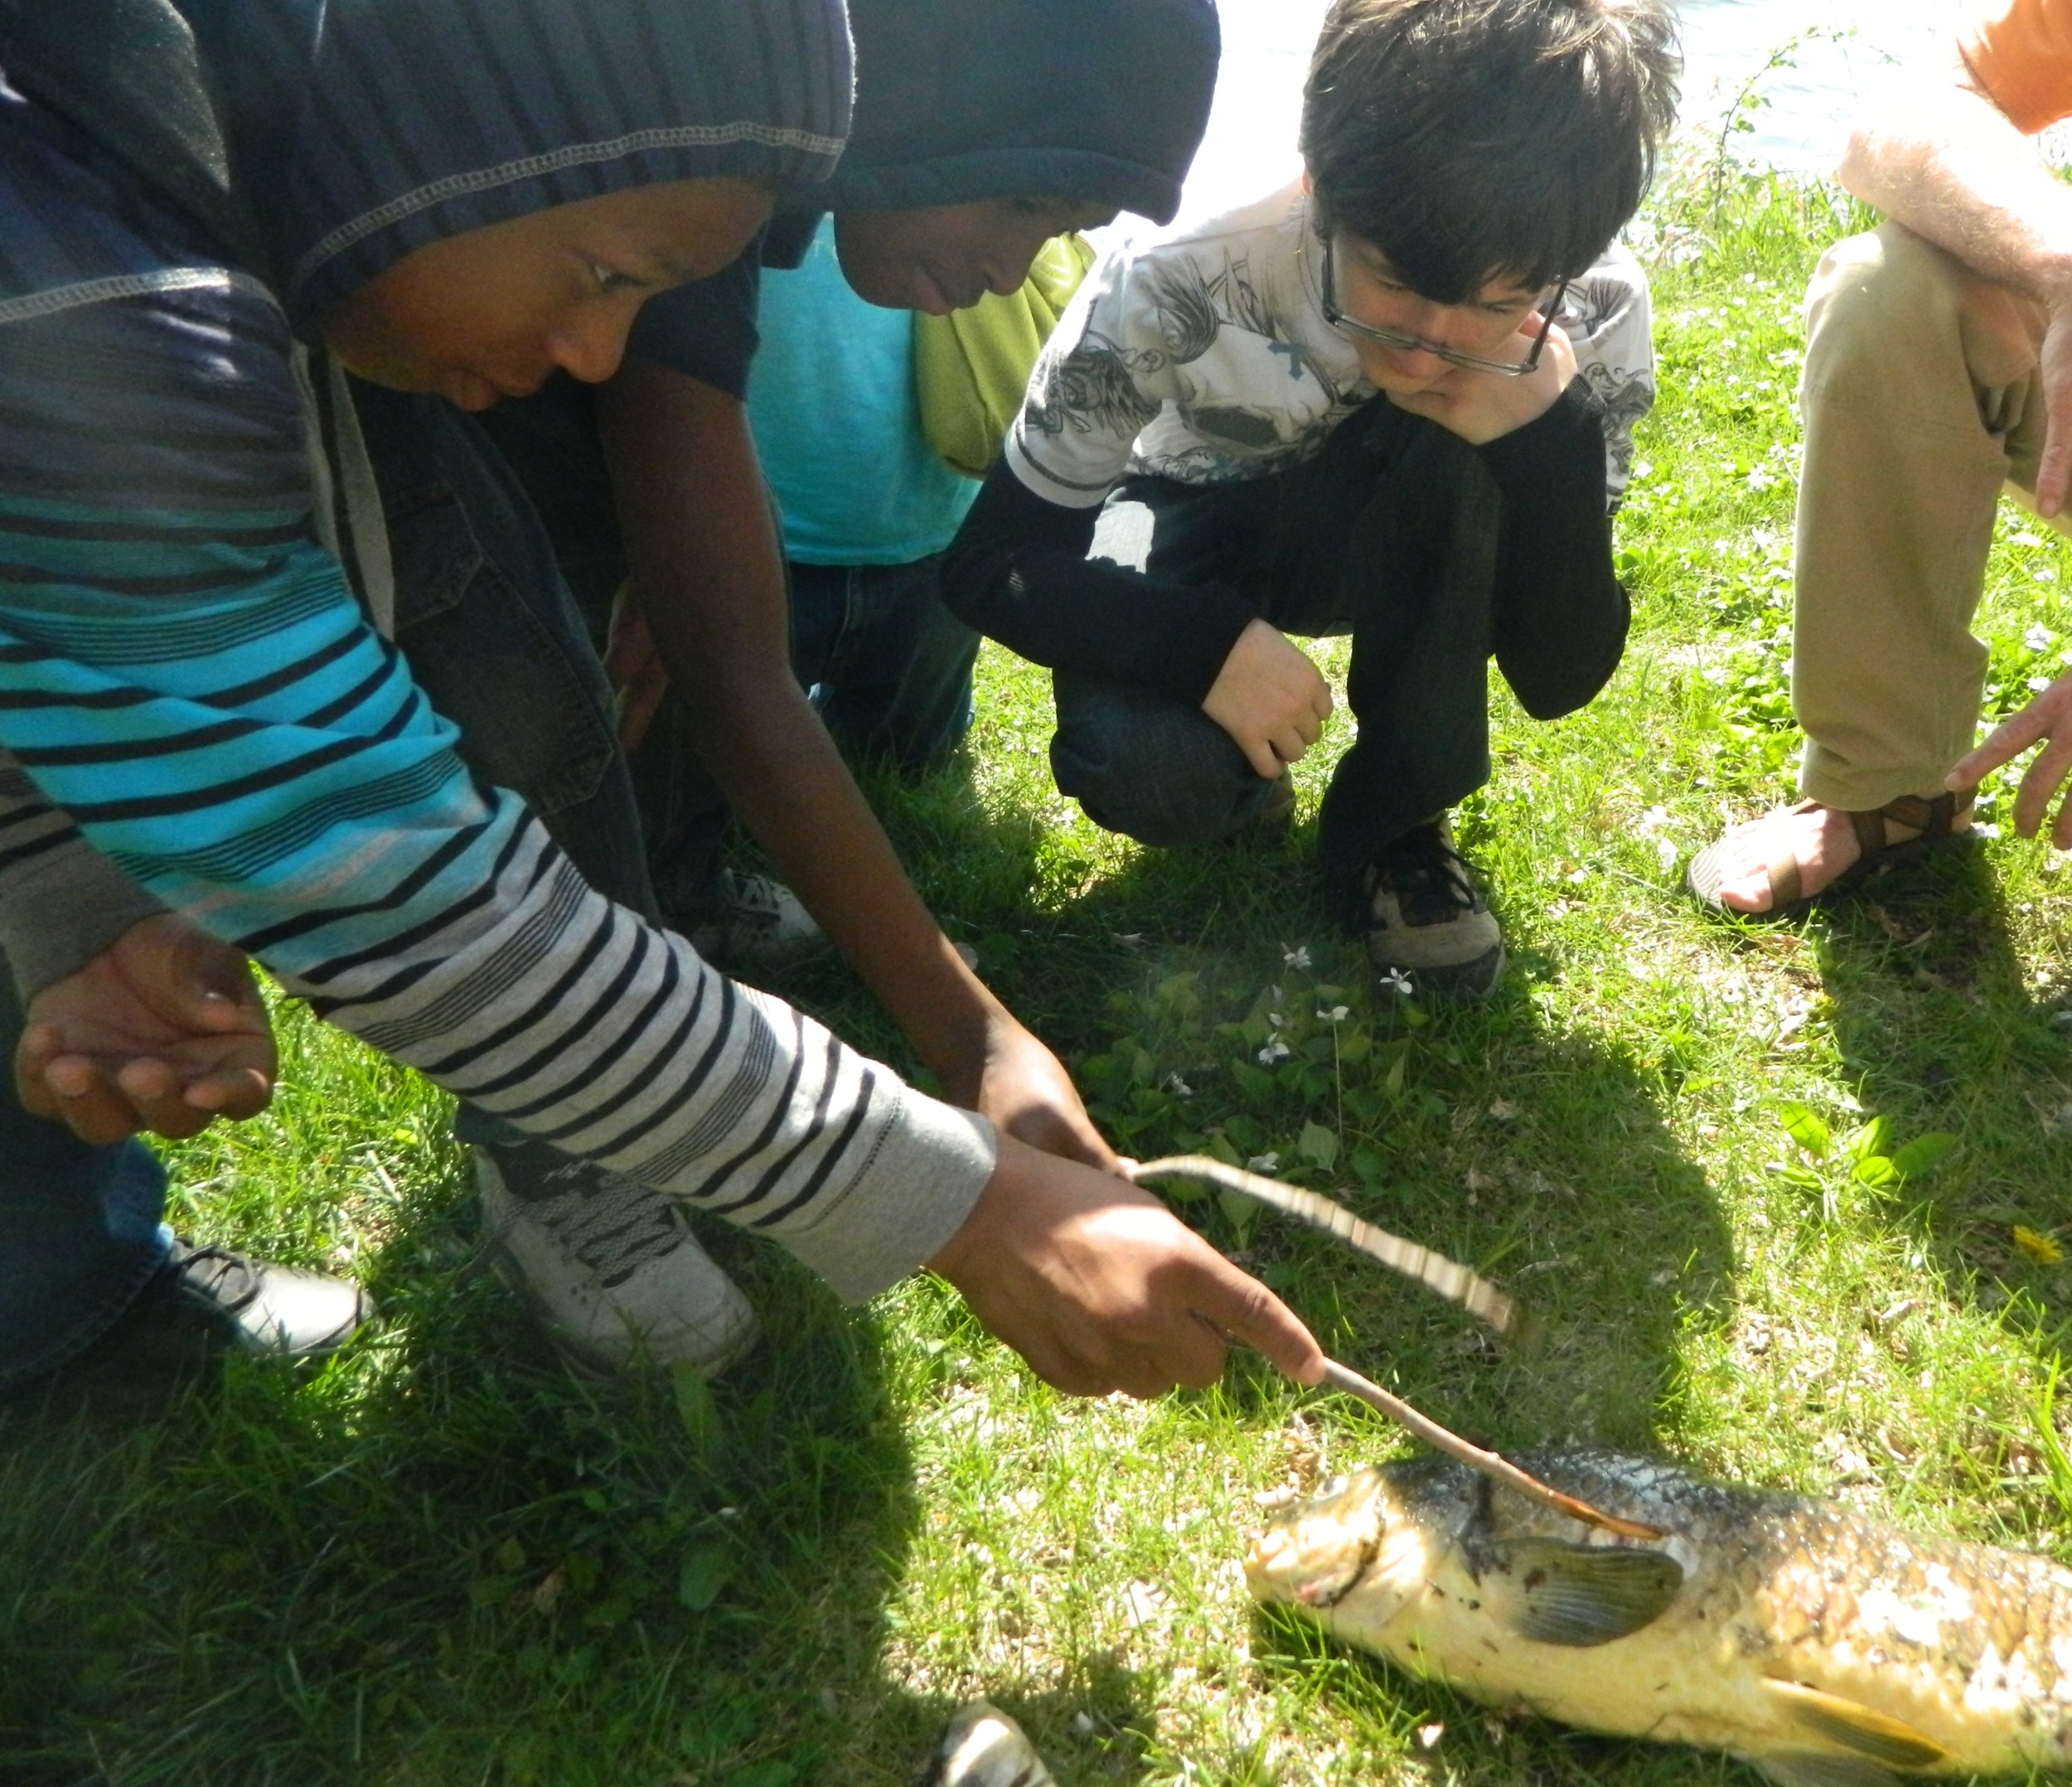 Kids use a stick to probe a dead carp found along Lake Waubesa. Photo credit: Carolyn Byers